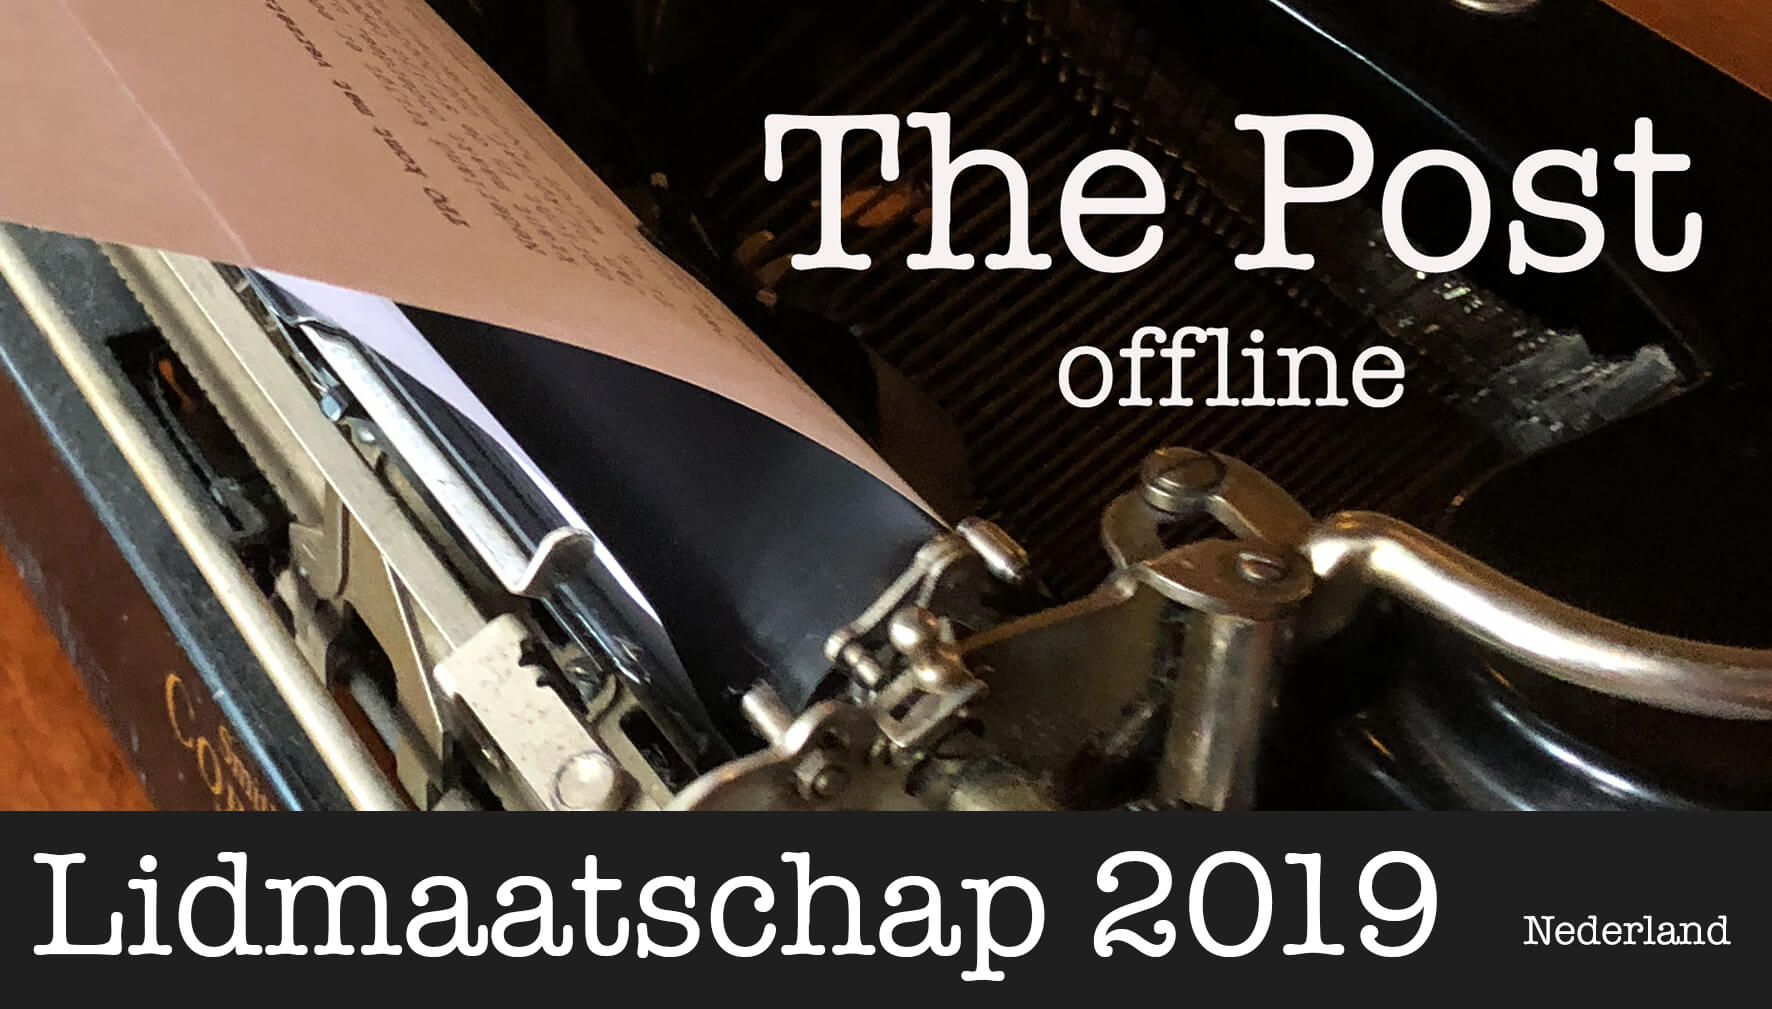 Lidmaatschap The Post Offline 2019